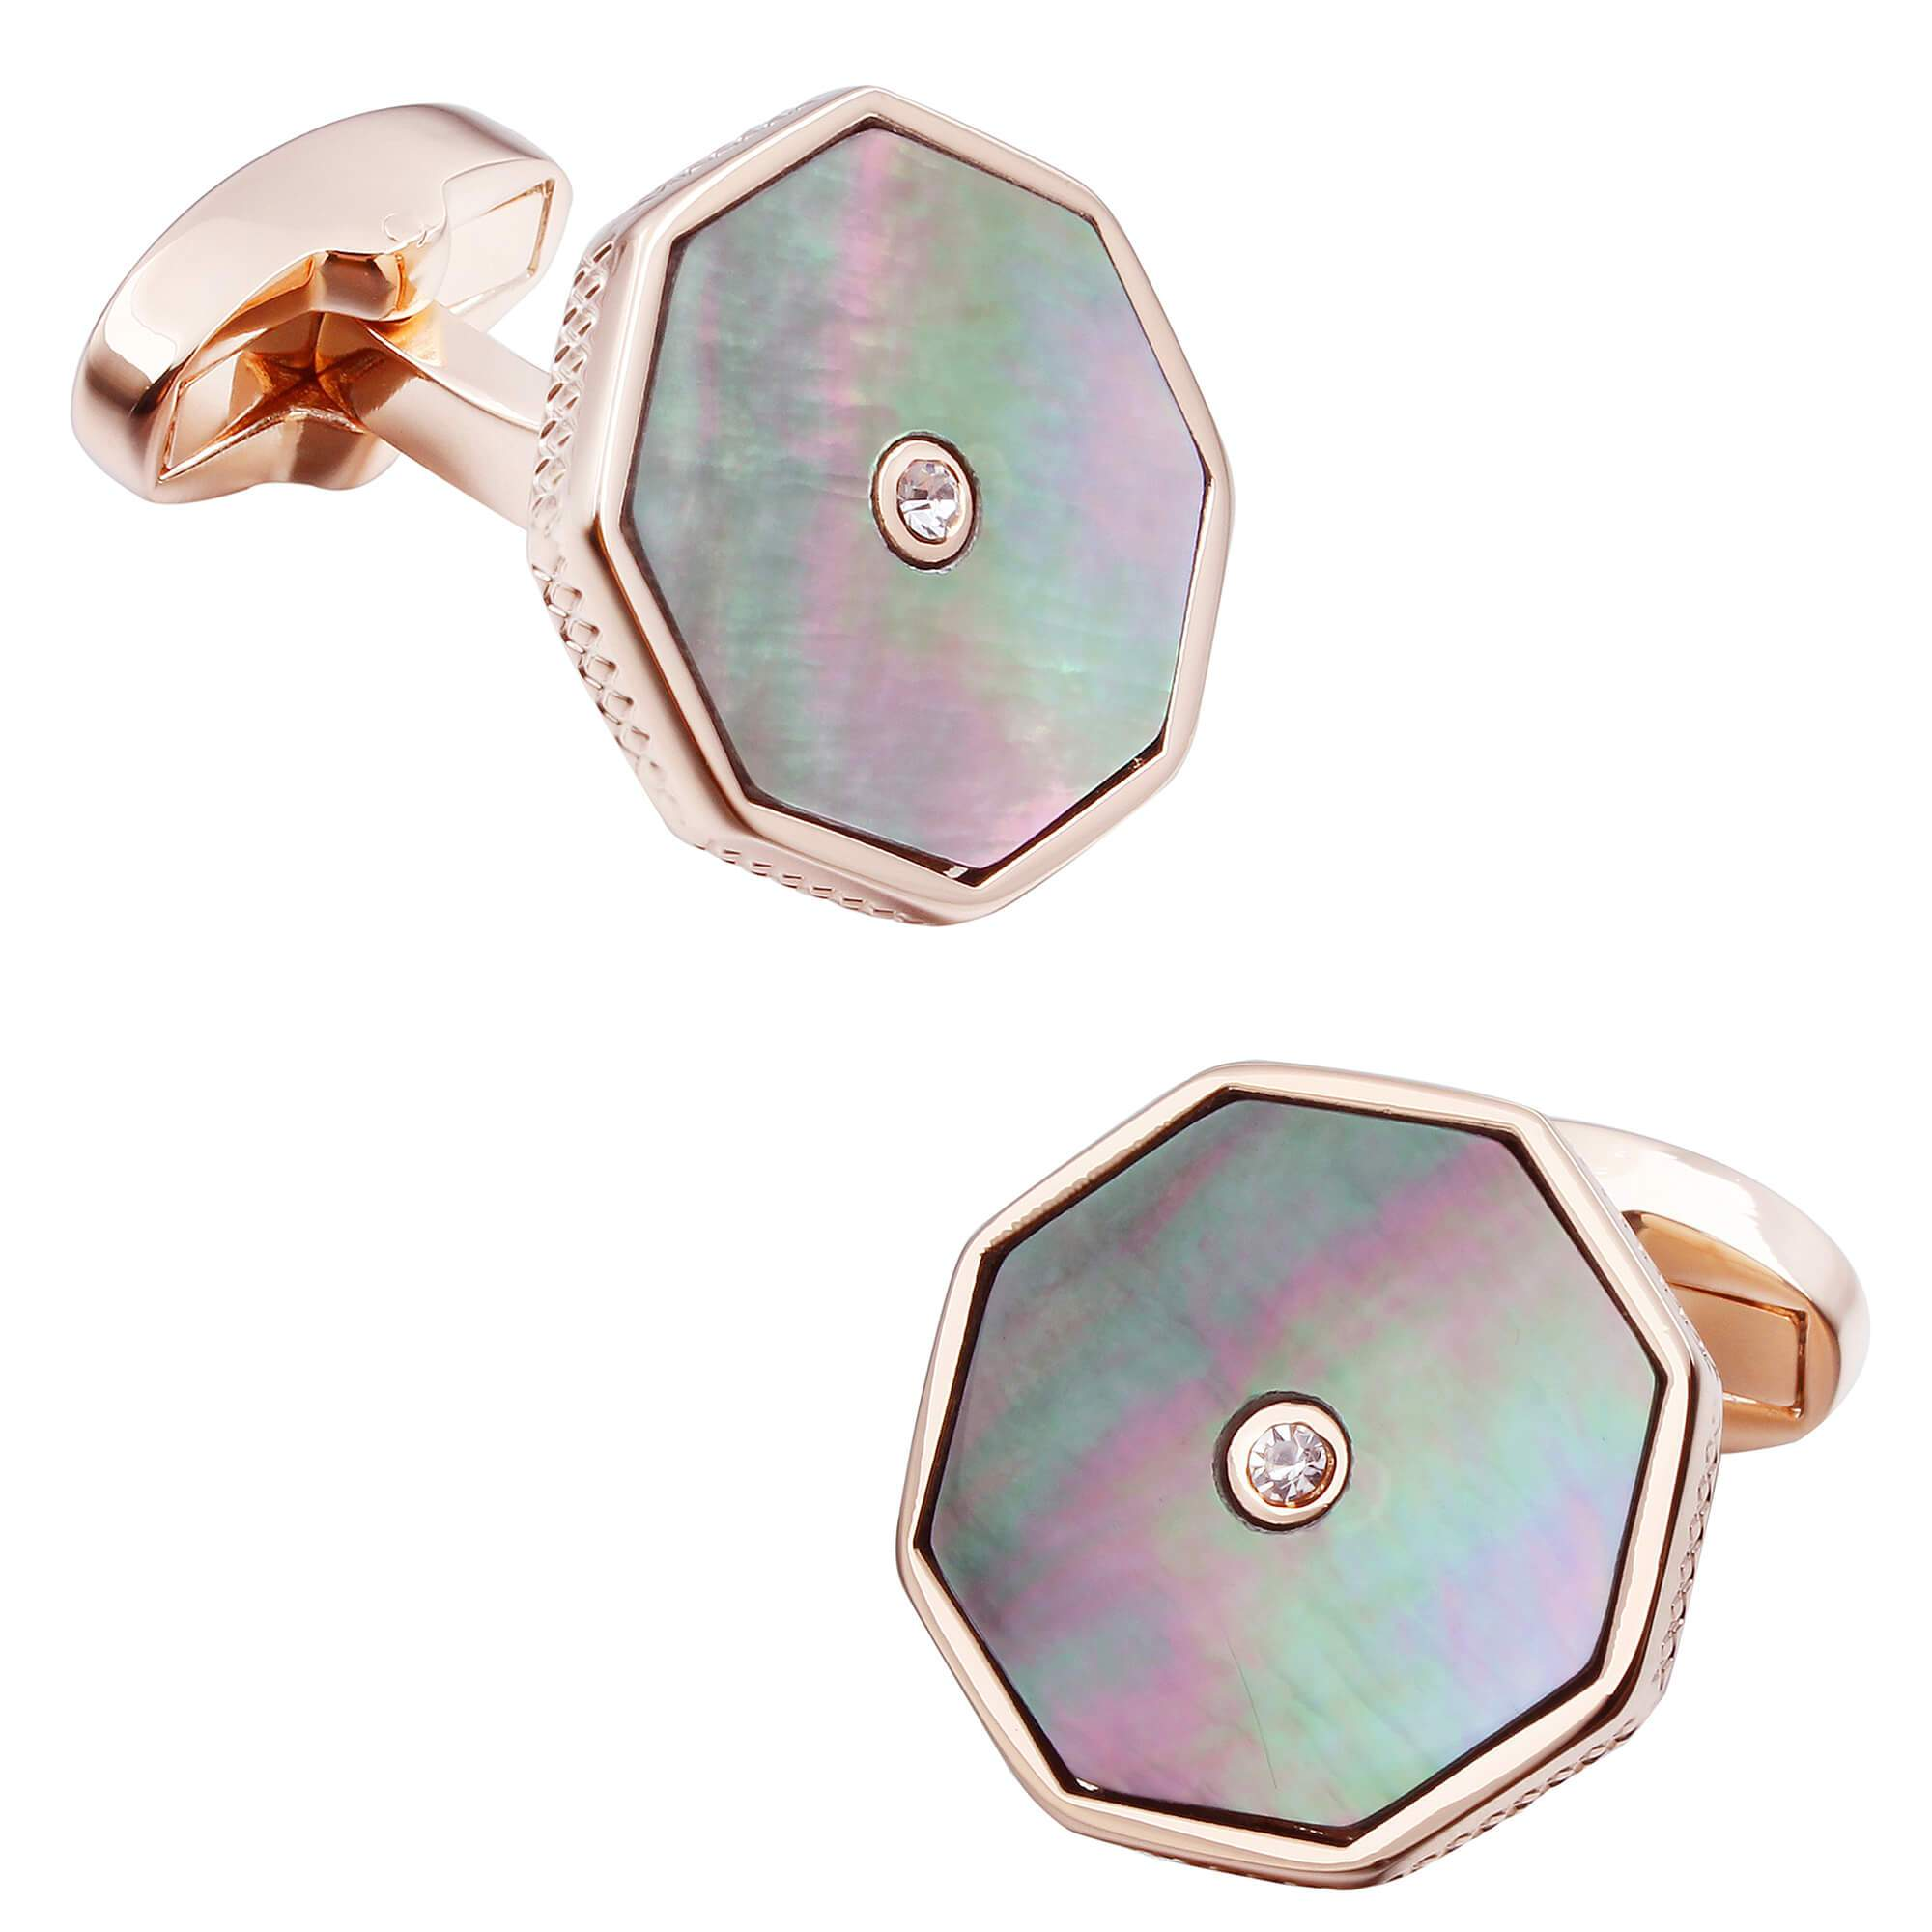 Black Mother of Pearl with Crystal in Rose Gold Cufflinks Classic & Modern Cufflinks Clinks Australia Default